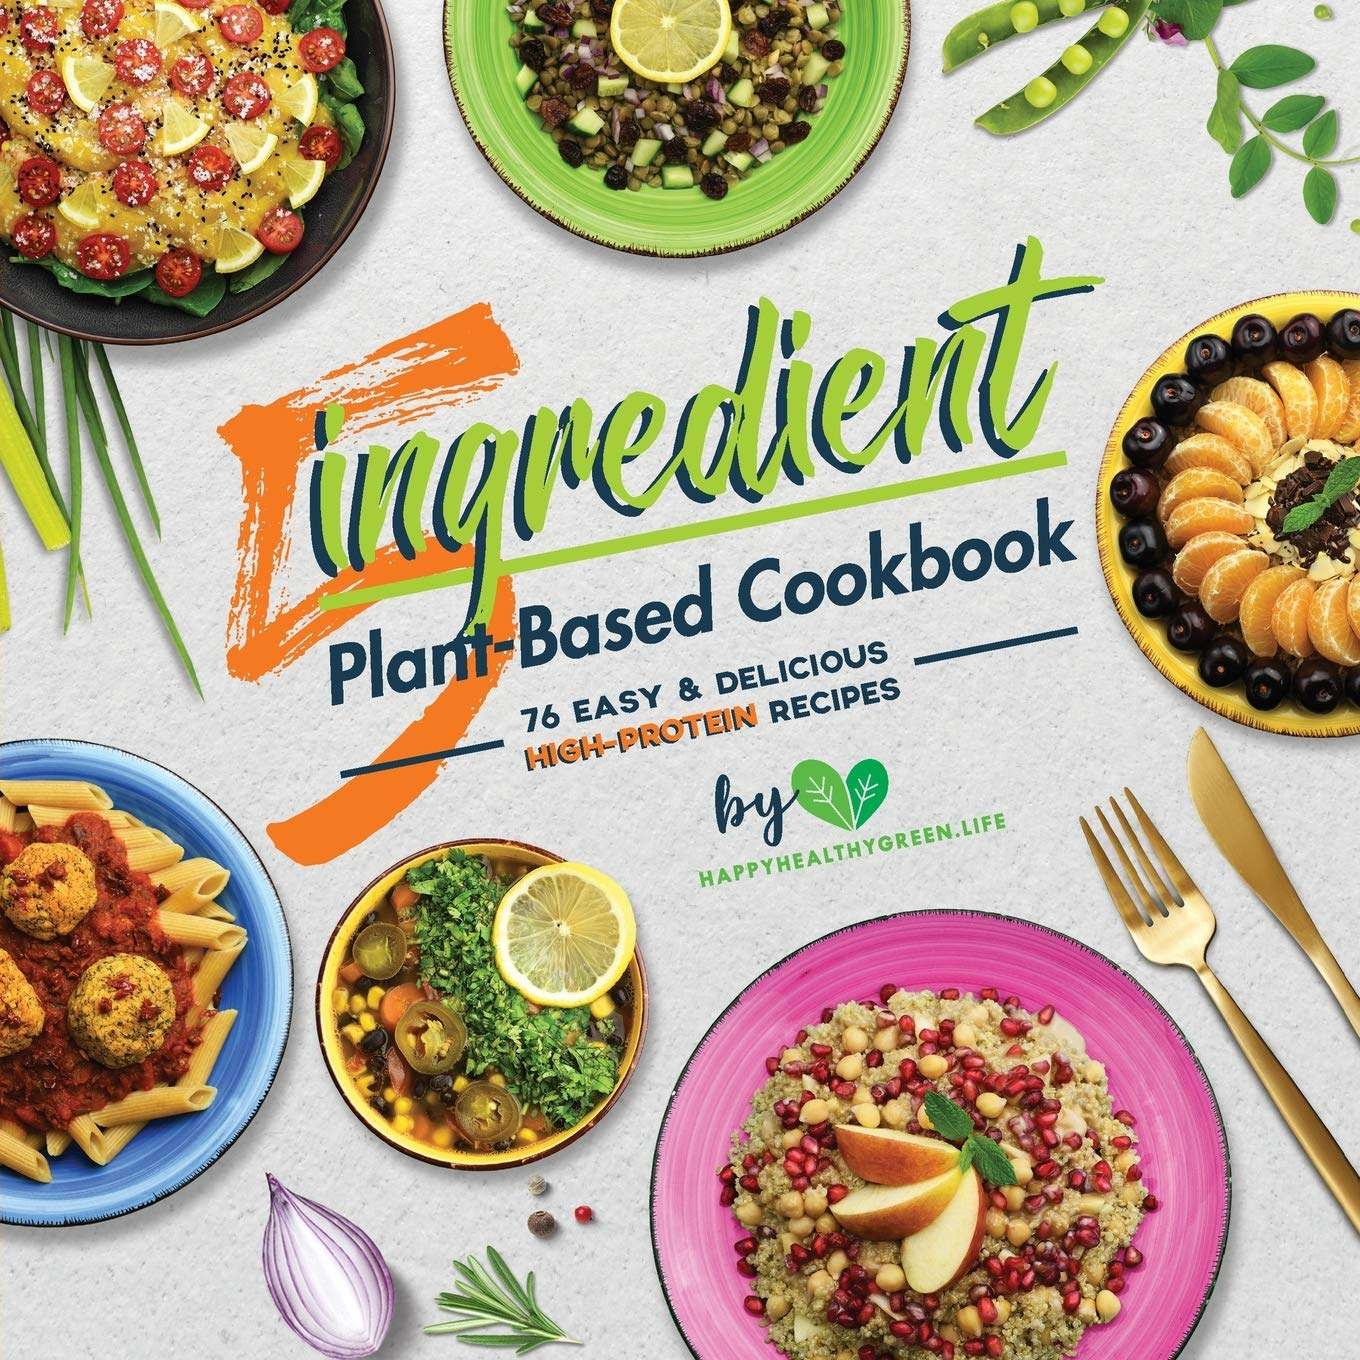 5-Ingredient Plant-Based Cookbook: 76 Easy & Delicious High-Protein Recipes (Suitable for Vegans & Vegetarians) 1